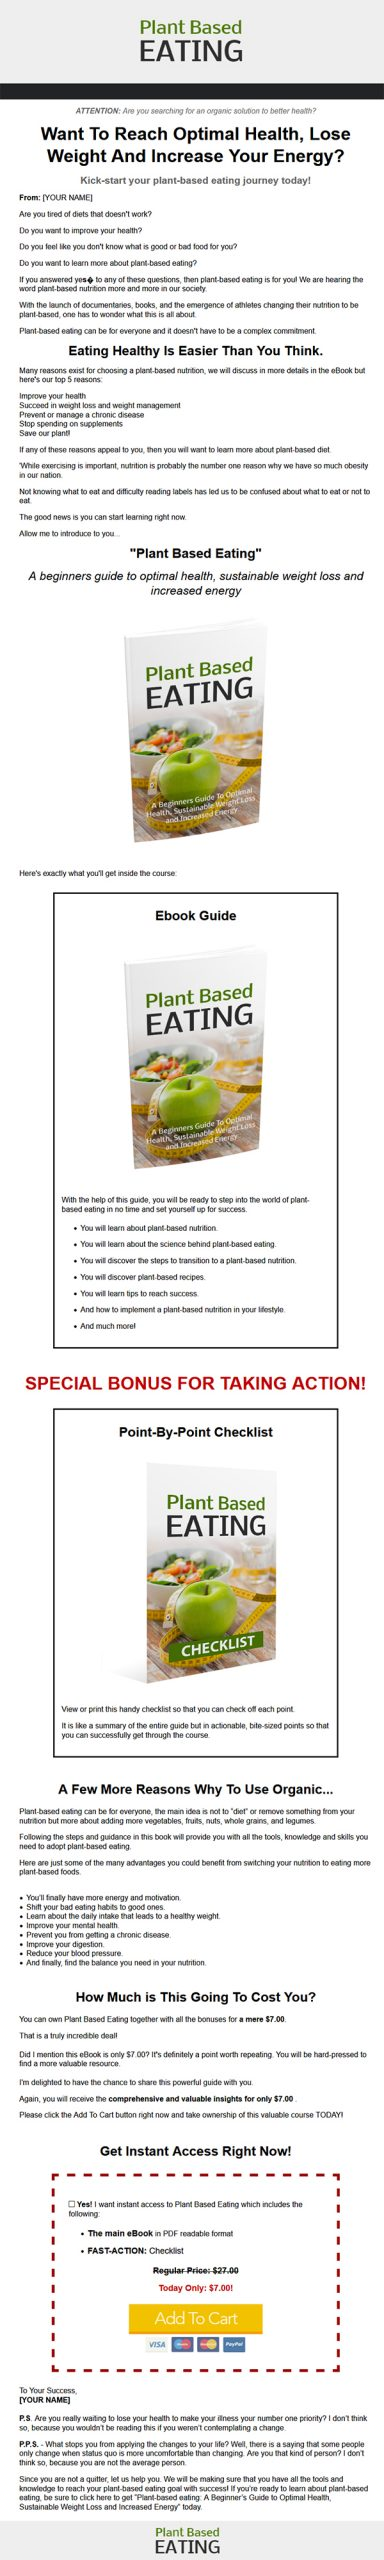 Plant Based Eating Ebook with Master Resale Rights